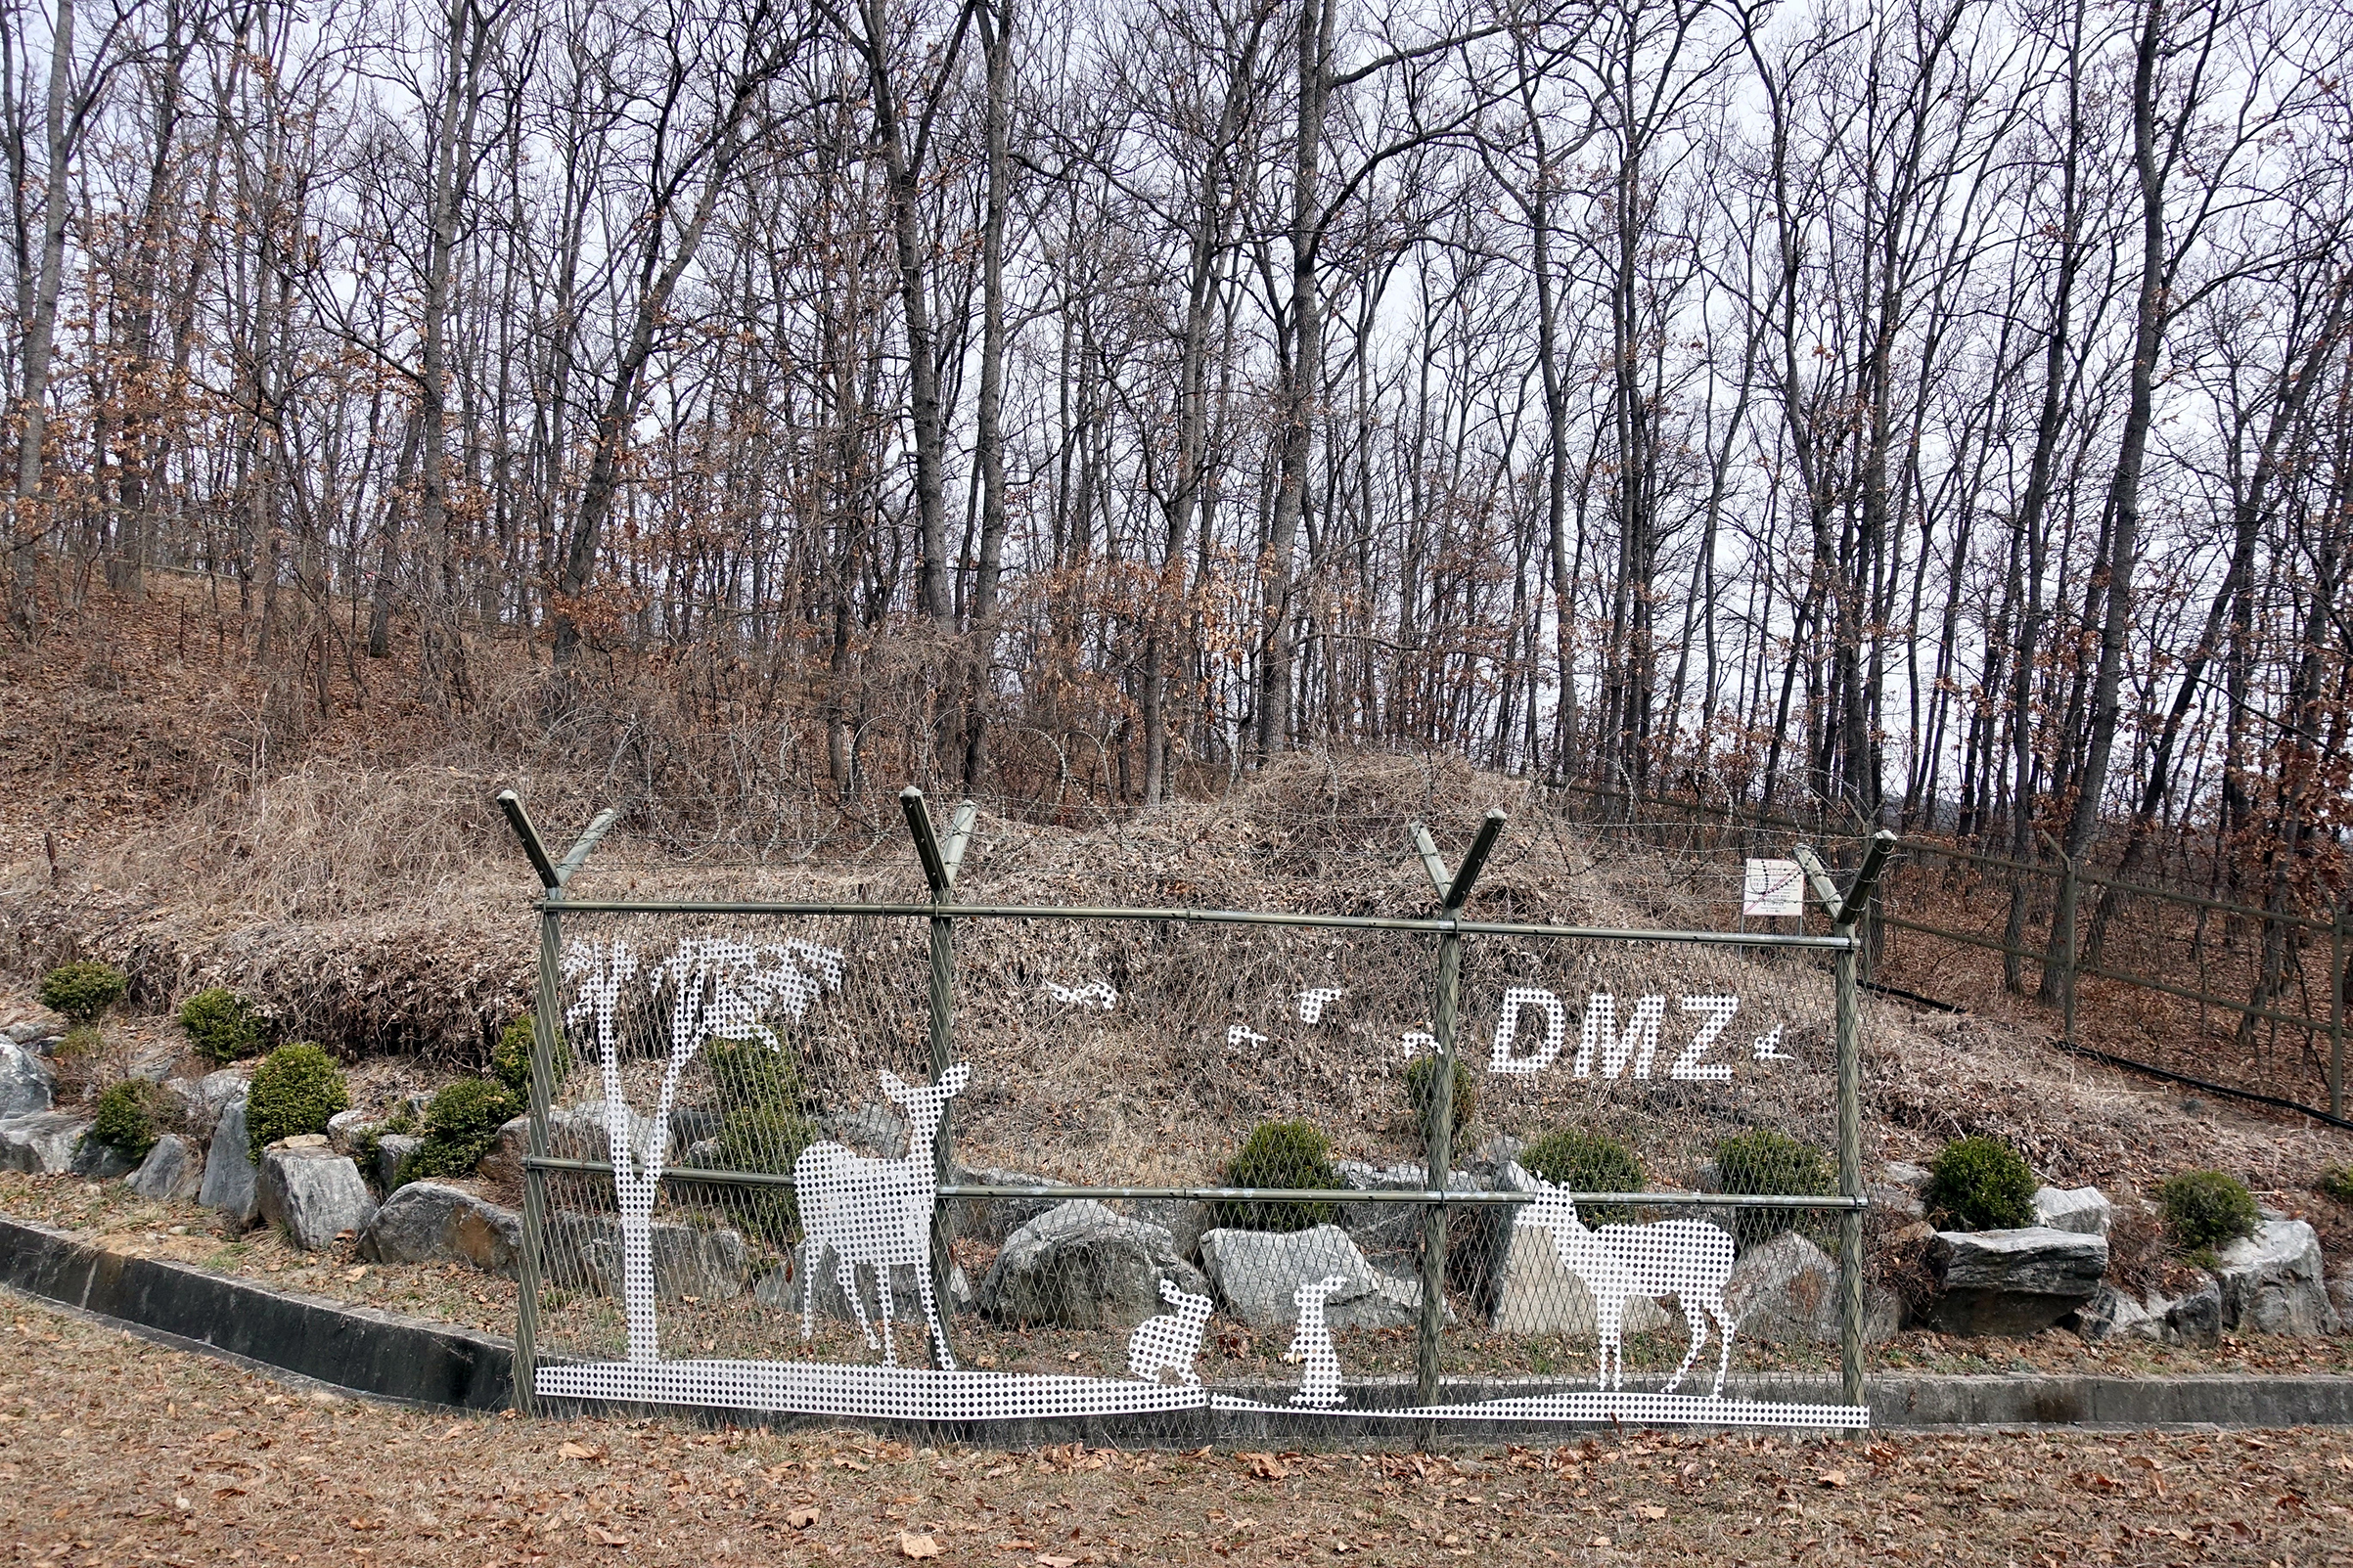 """A decorated fence next to a suspected minefield inside the DMZ on March 21; a nearby sign warns not to enter, or a person could """"get killed instantly"""""""